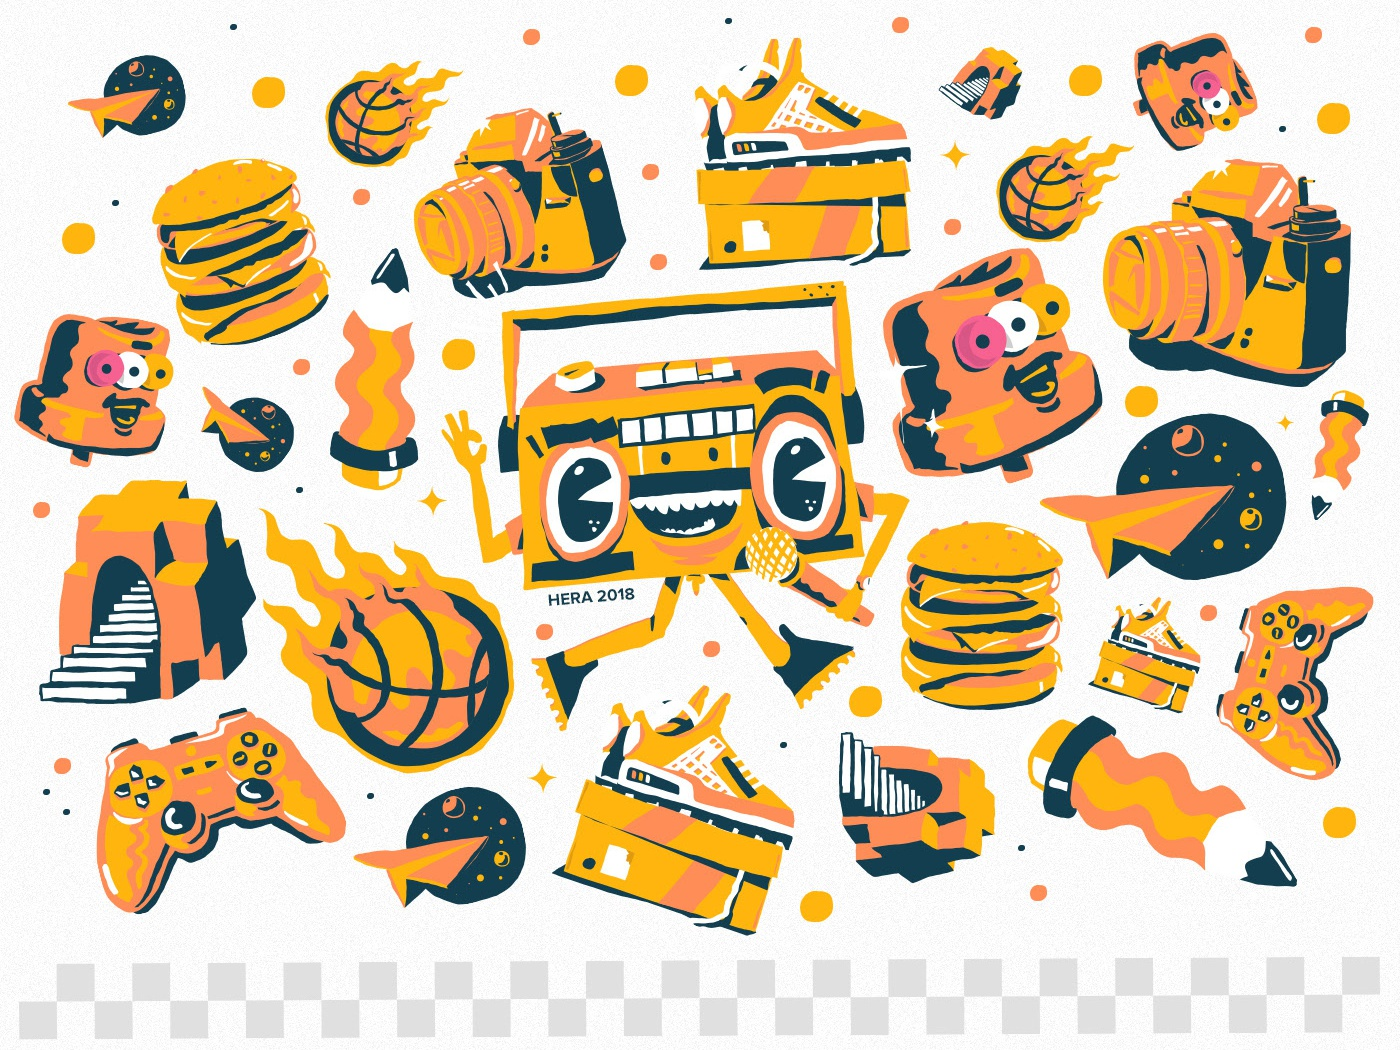 Mr Spraycan and co. icon ui drift business logo drips typography lettering branding 2018 digital-painting dribbble charactersdesign hera vector graffiti design illustration character